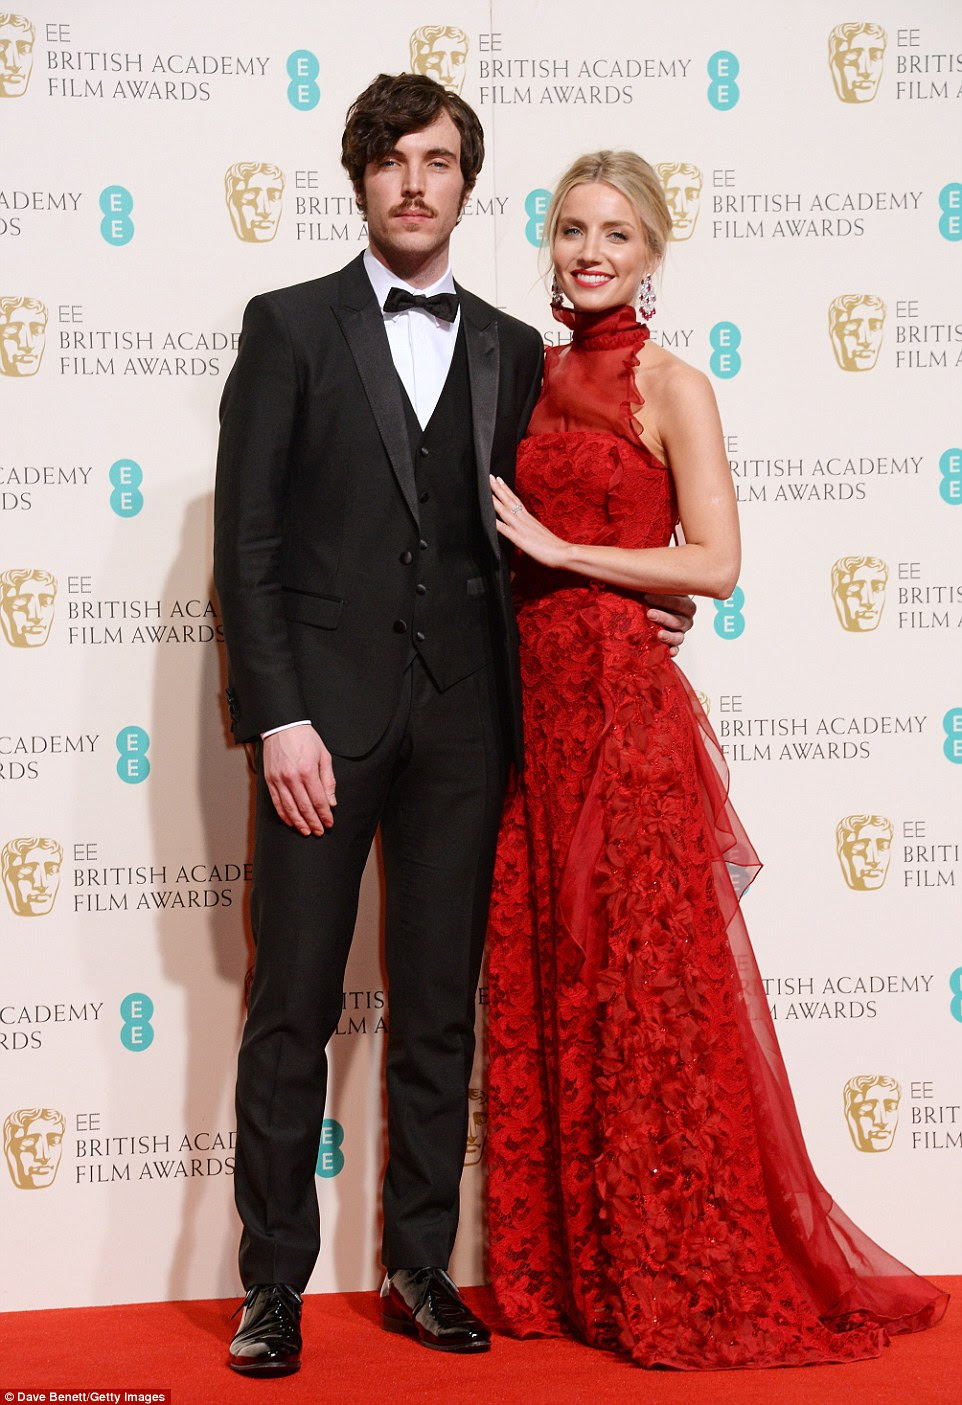 Storming the awards: Anabelle walked along the red carpet with Cemetery Junction actorTom Hughes, who she presented an award with later in the evening